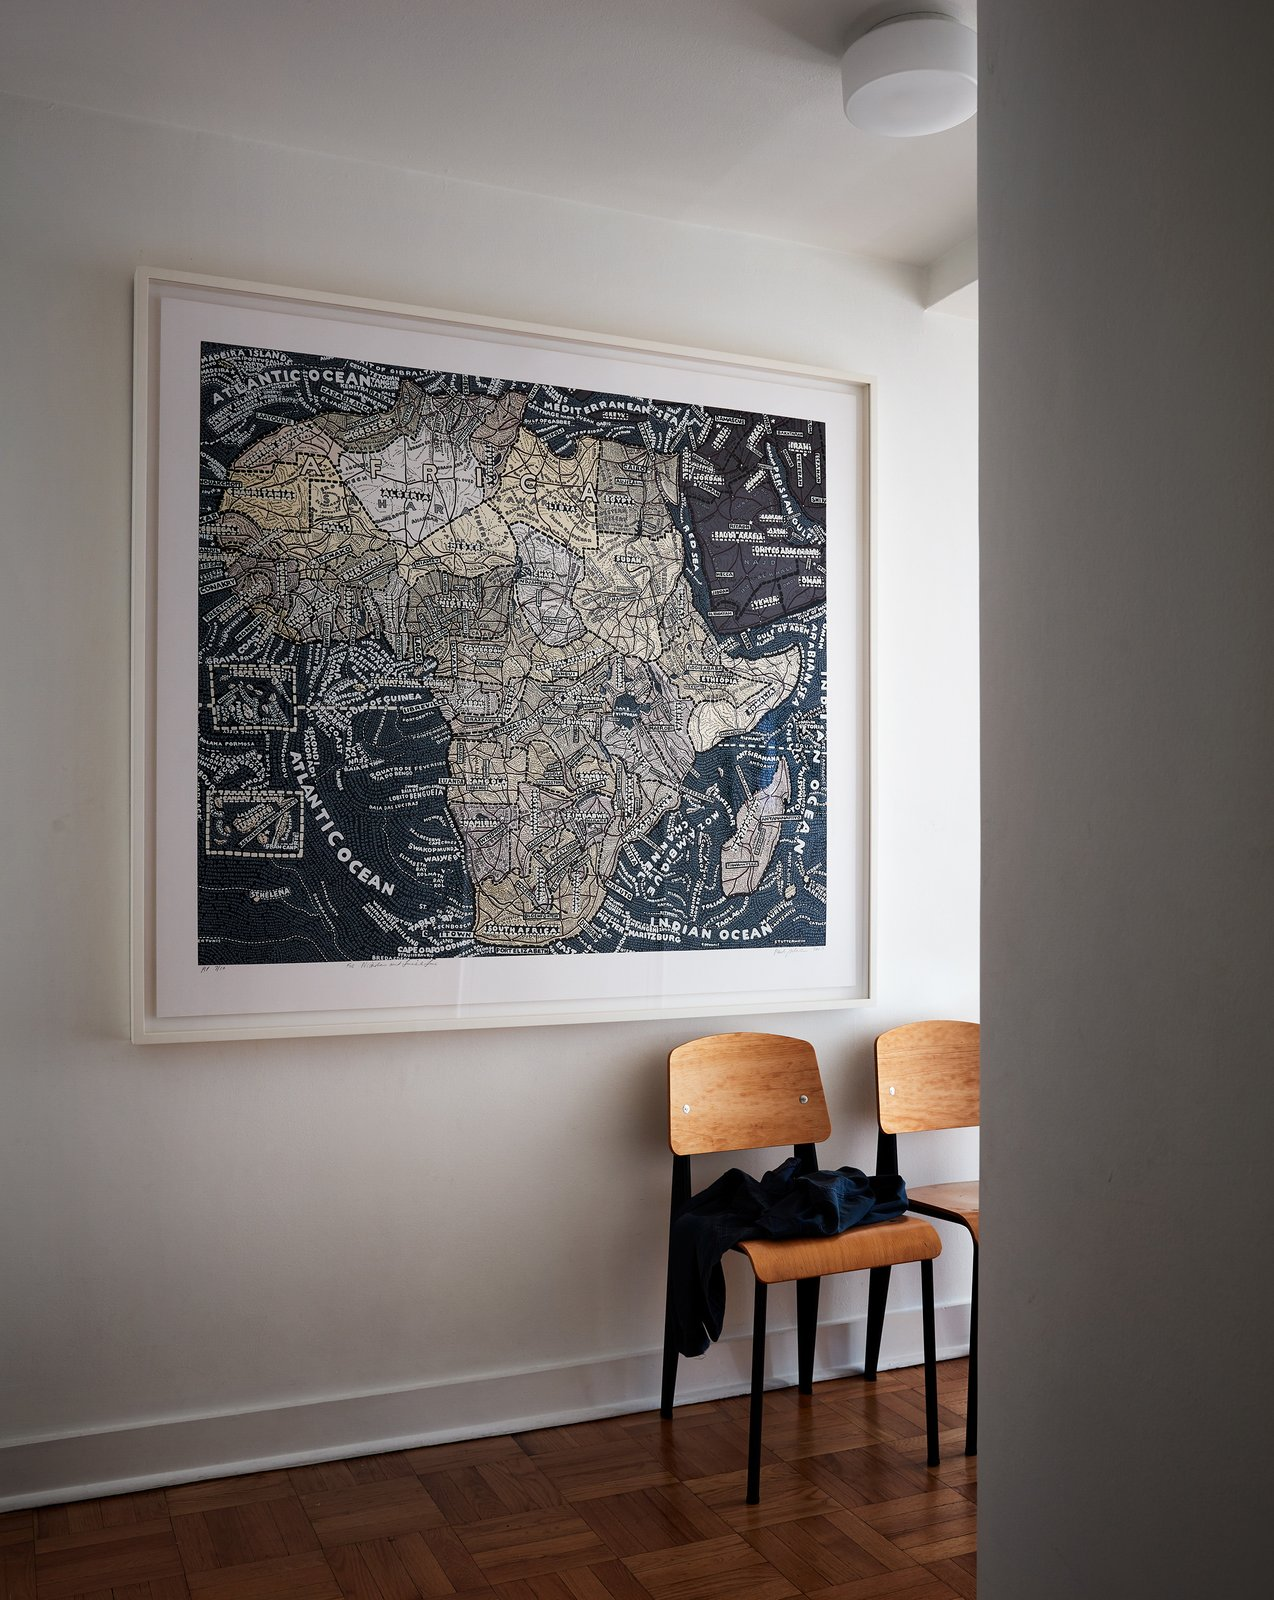 Hallway and Medium Hardwood Floor Pentagram designer Paula Scher gifted the couple one of her silkscreened maps.  My Photos from Two Magazine Creatives Fit Graphic Art and Vintage Furniture In a Brooklyn Apartment